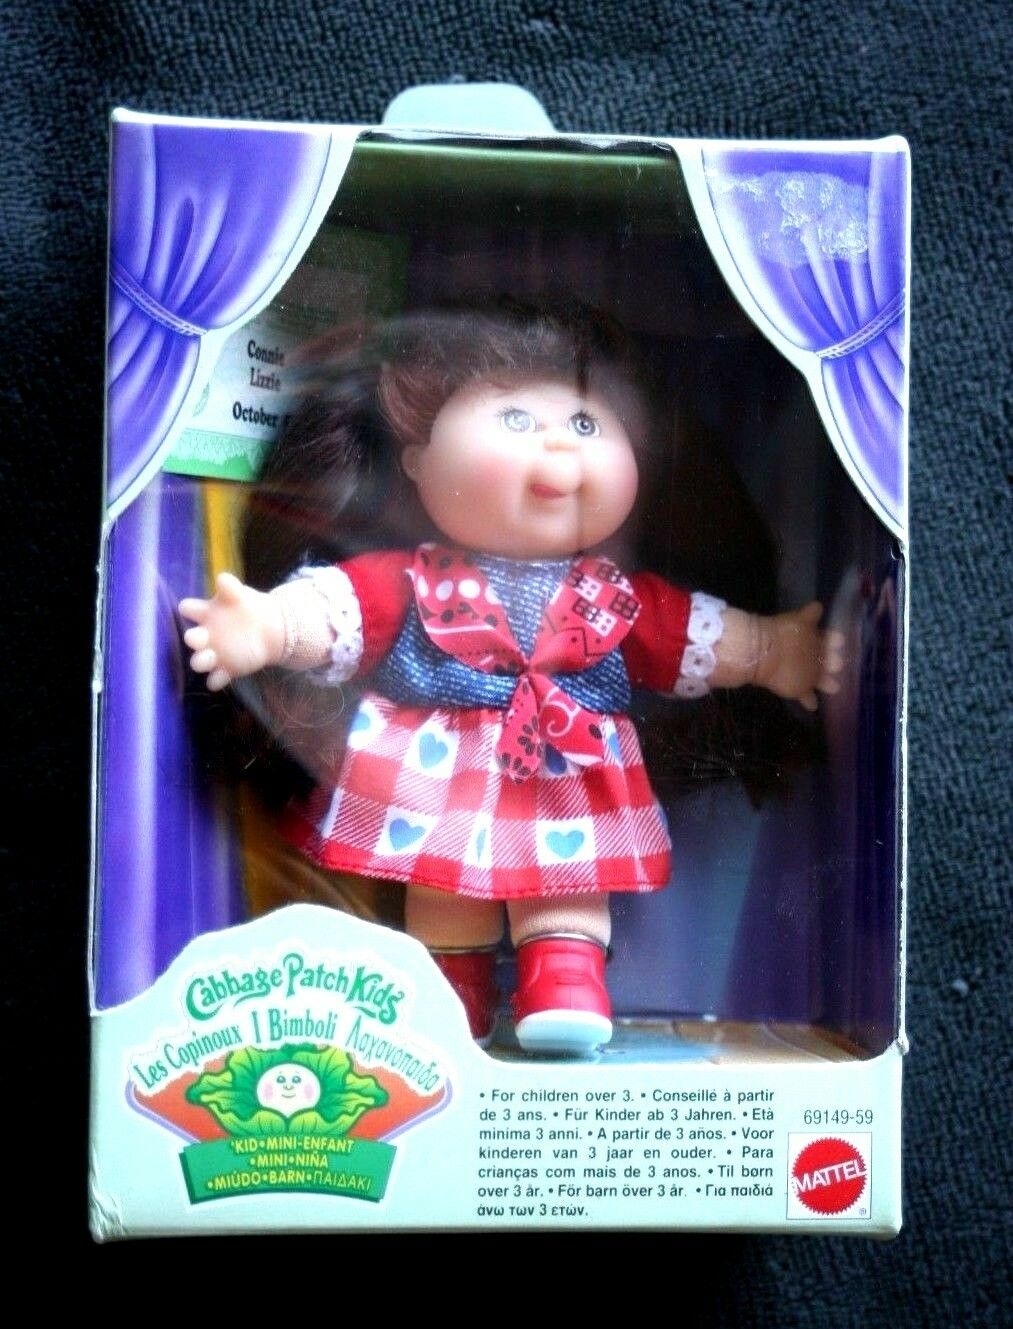 VINTAGE CABBAGE PATCH DOLL: CONNIE LIZZIE (MUÑECA REPOLLO). NEW IN BOX SEALED OS